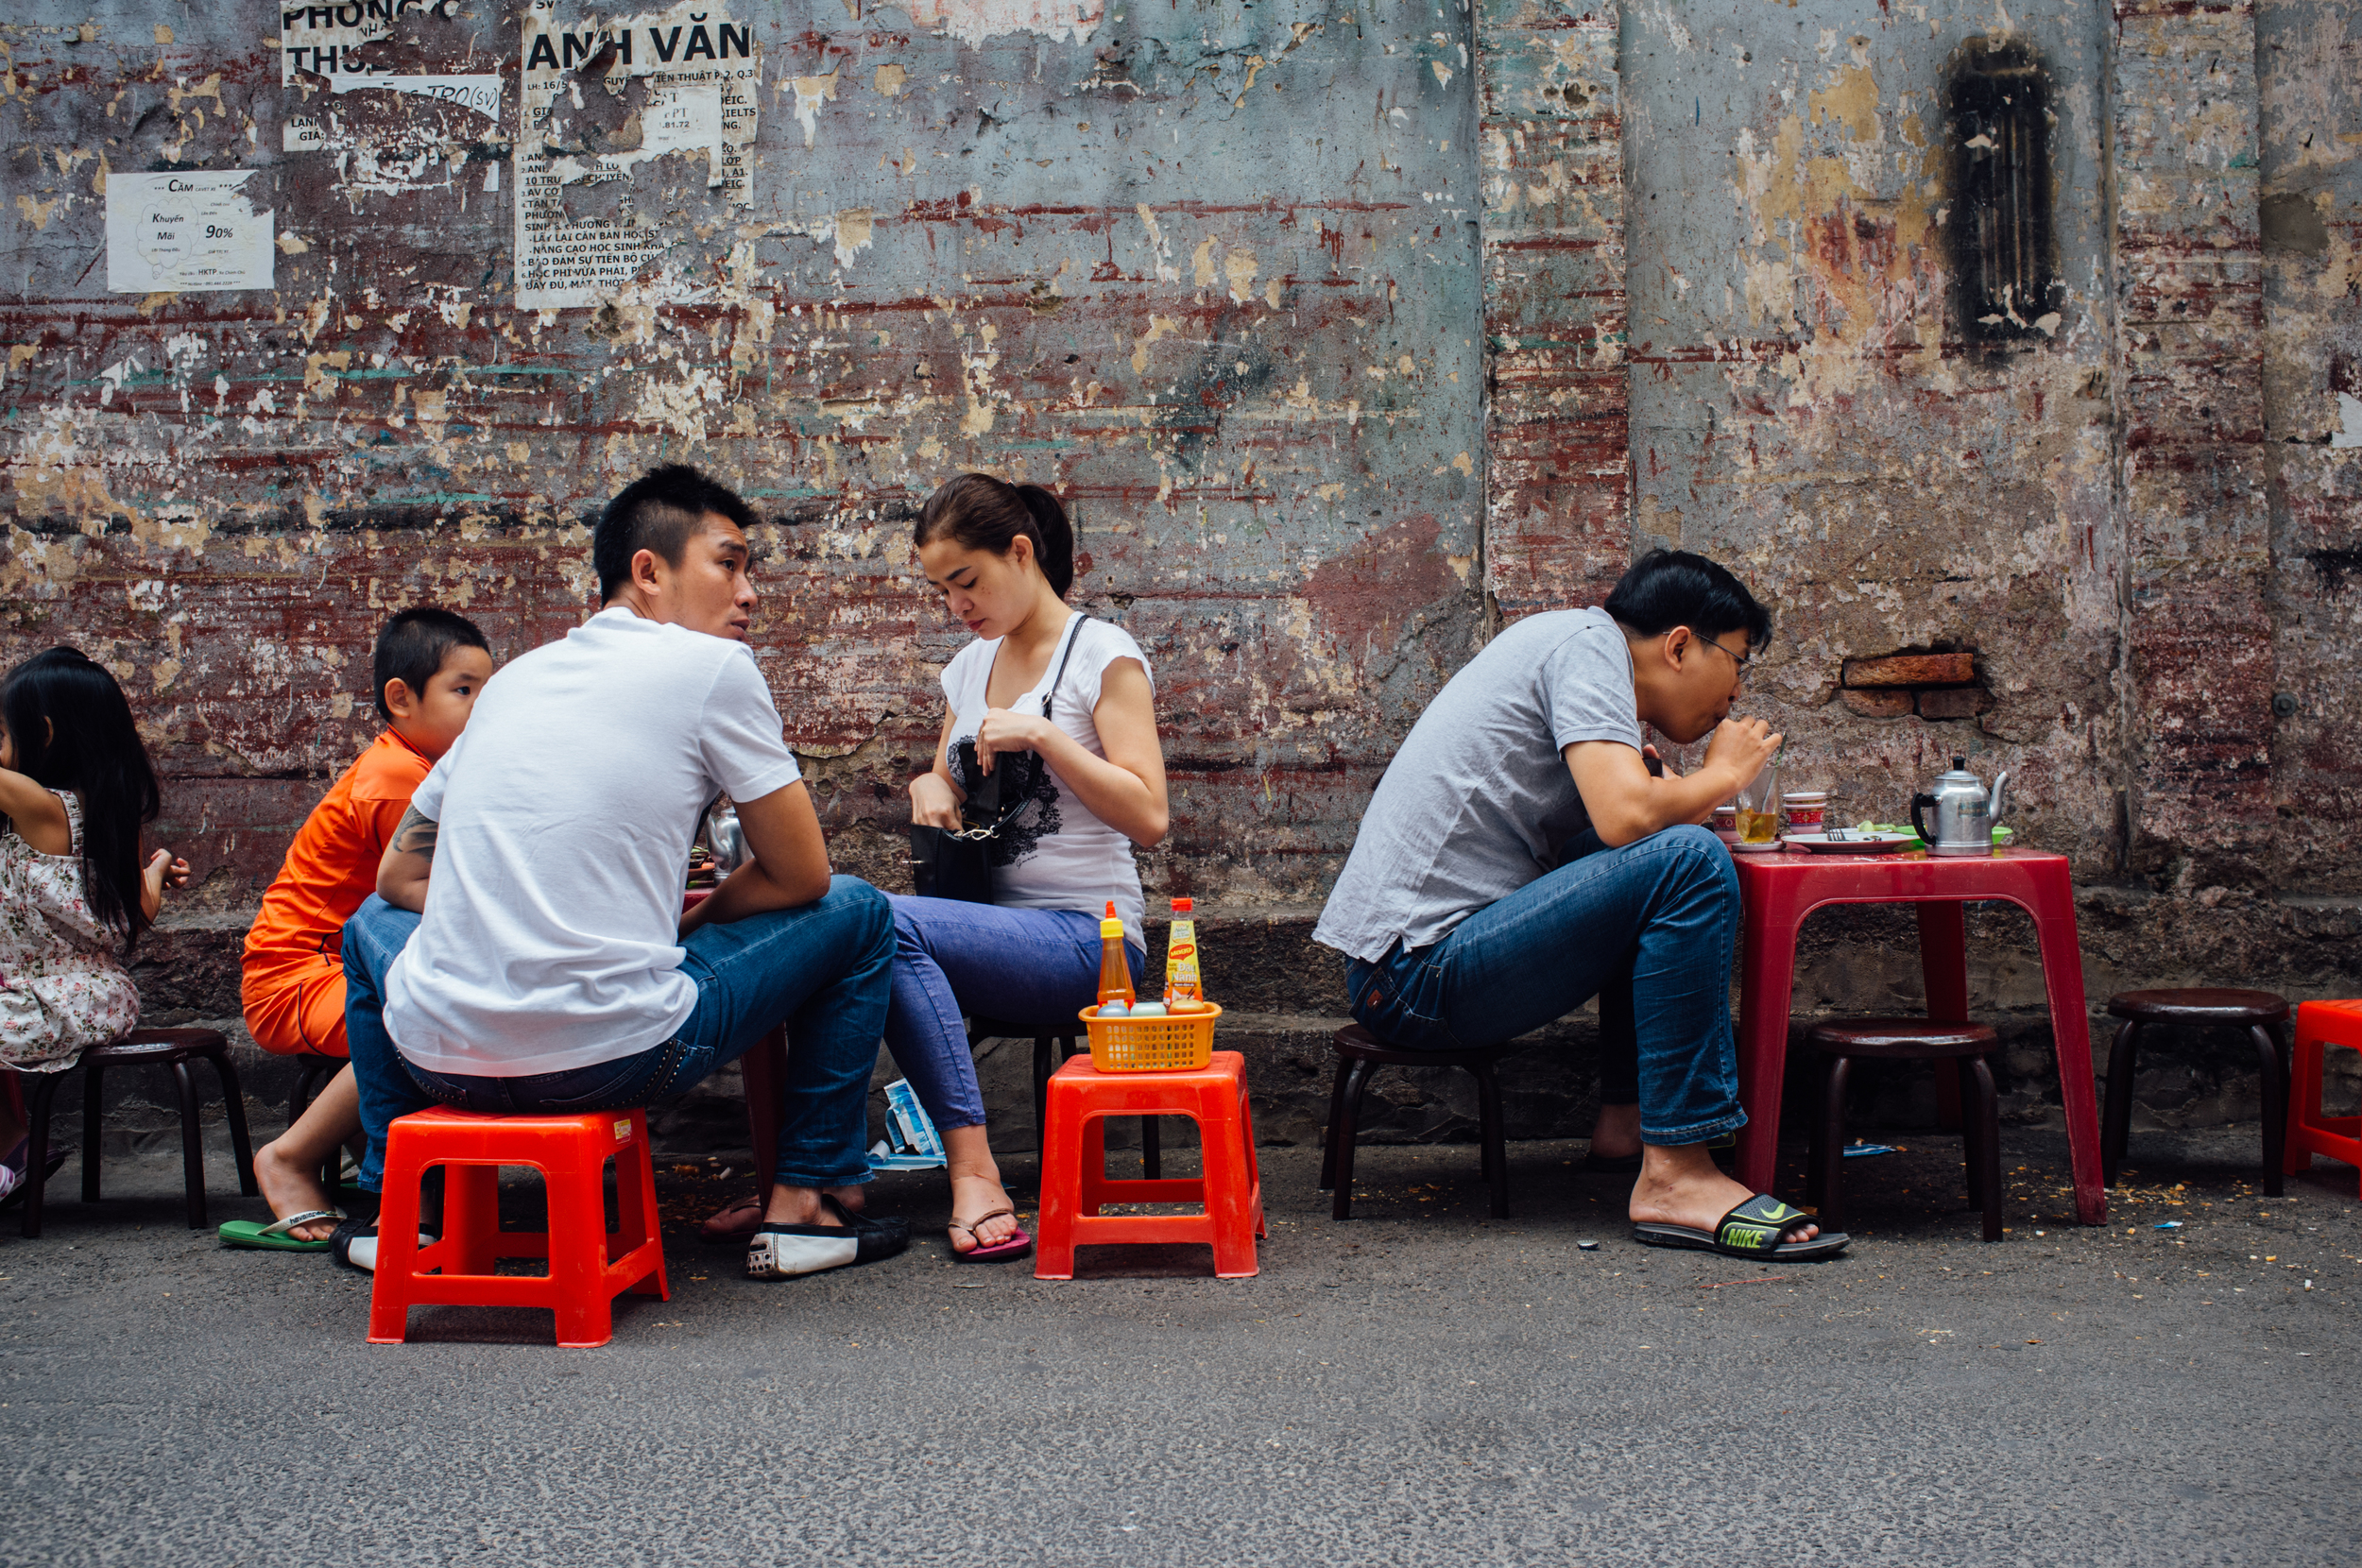 Saigon: what could be a better meal-time setting?